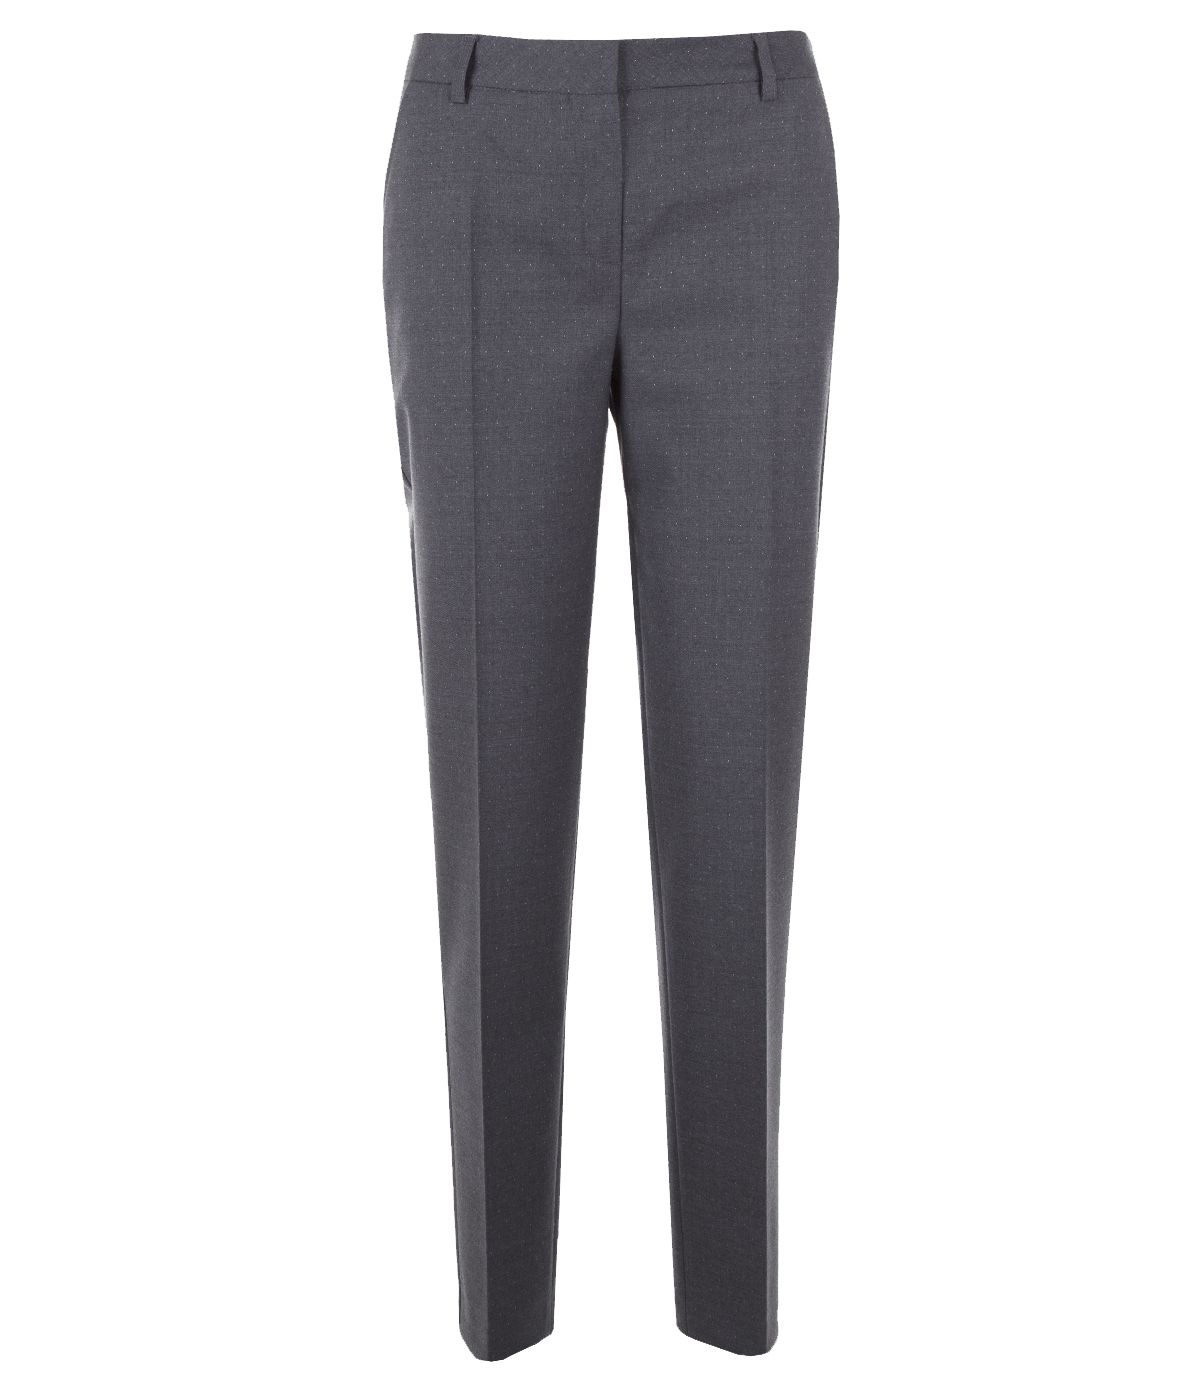 Elegant trousers with crease, with wool 0